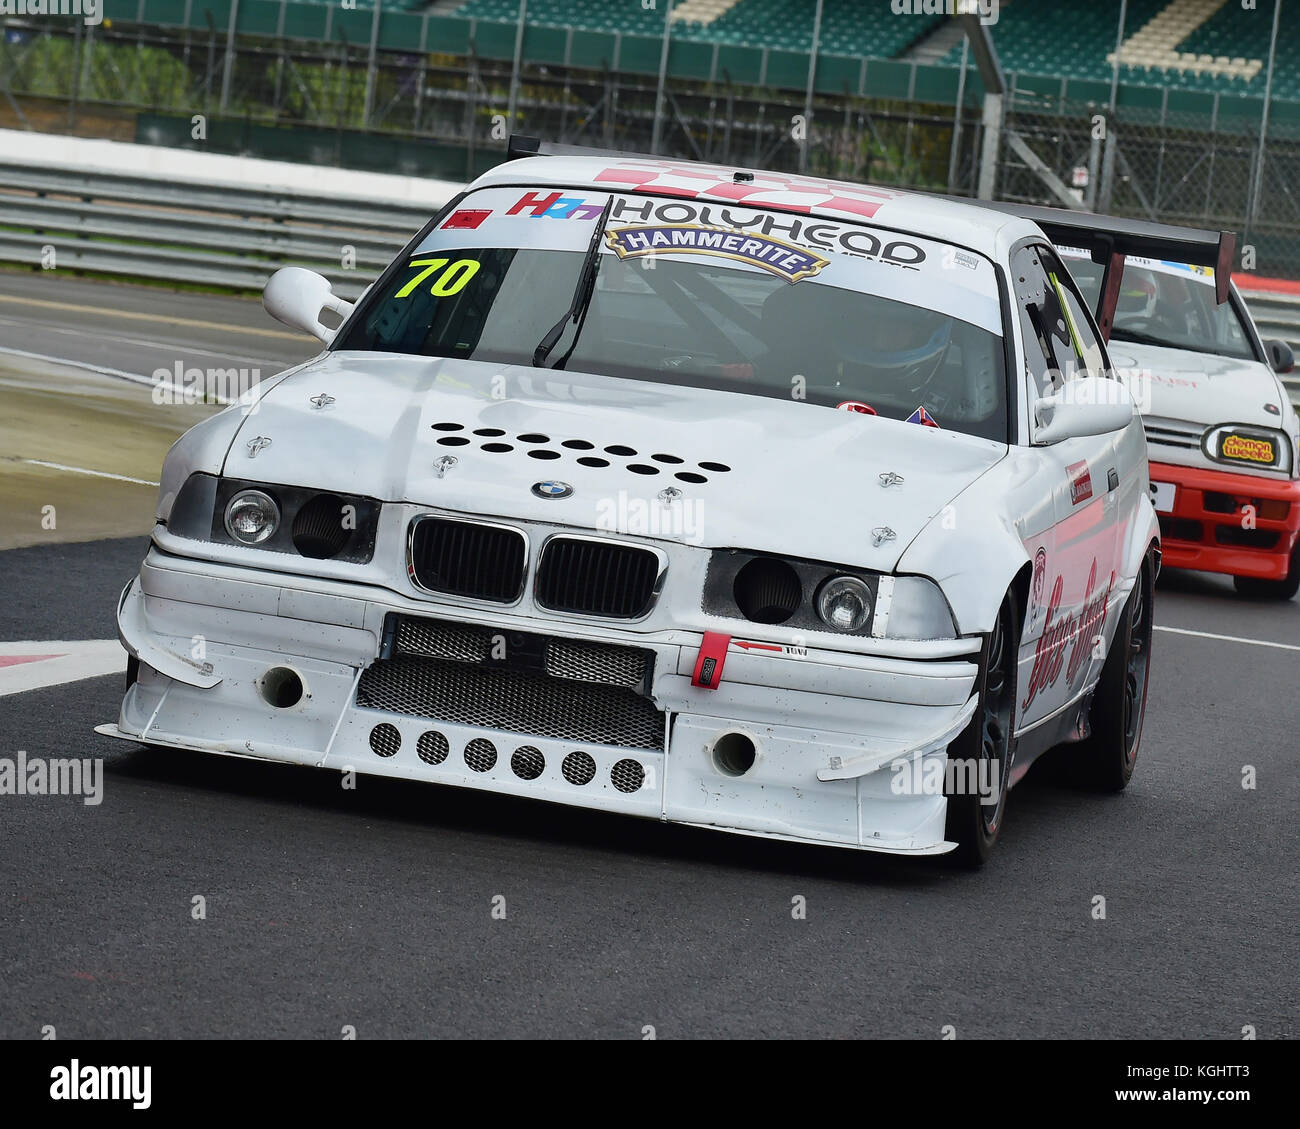 Bmw Z3 Drift Car: Bmw E36 Stock Photos & Bmw E36 Stock Images